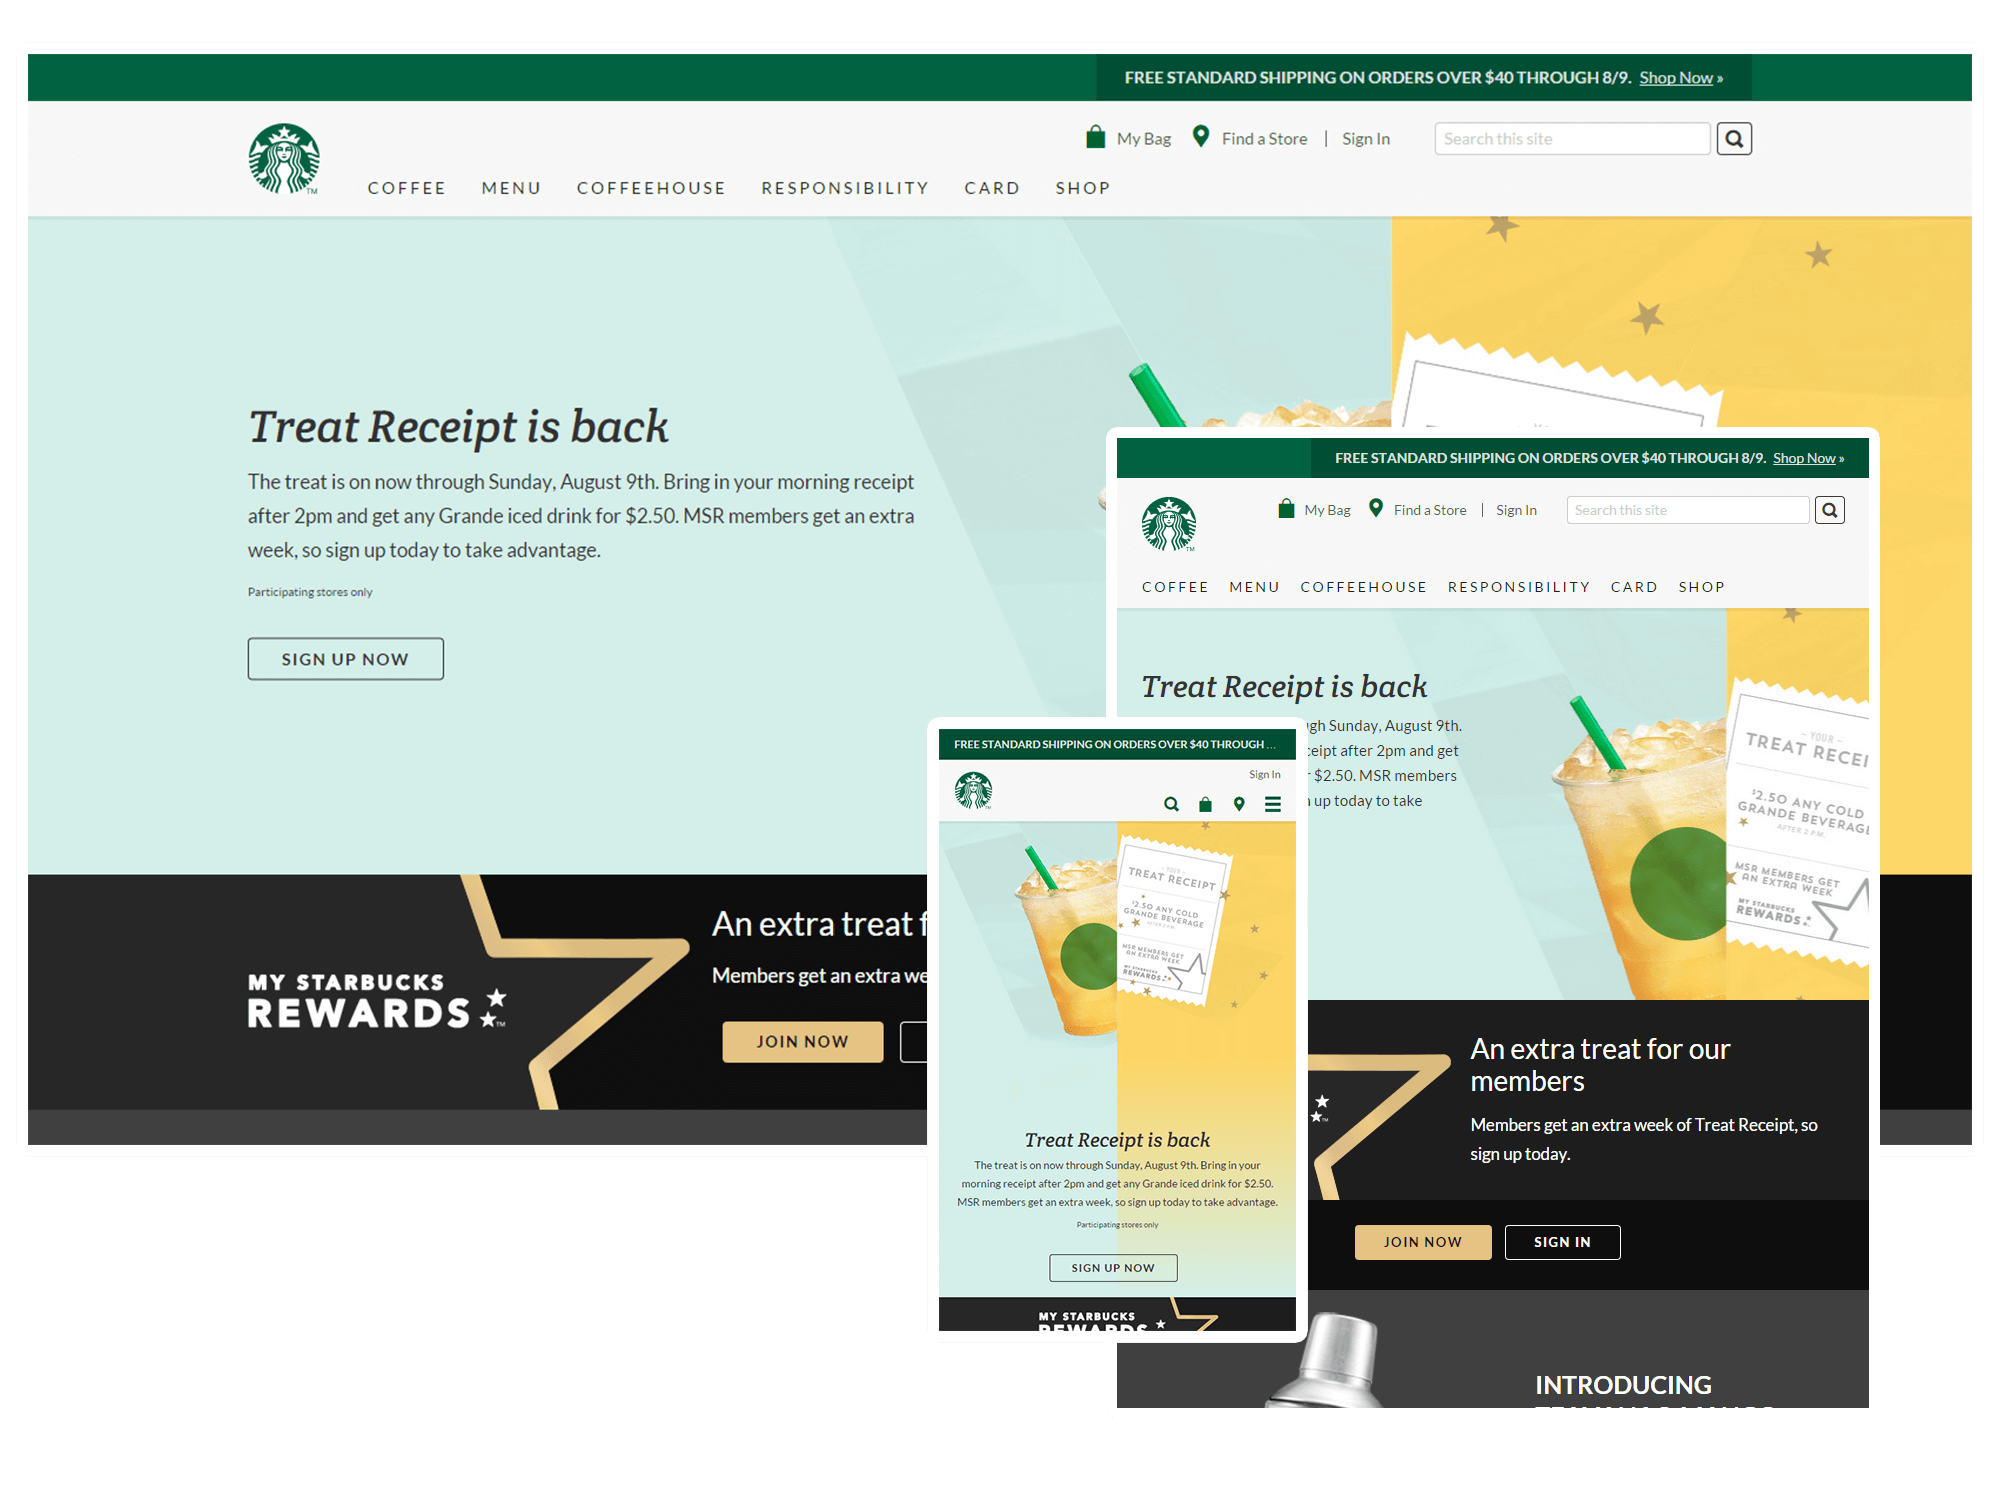 An example of Responsive Website Design from Starbucks coffee